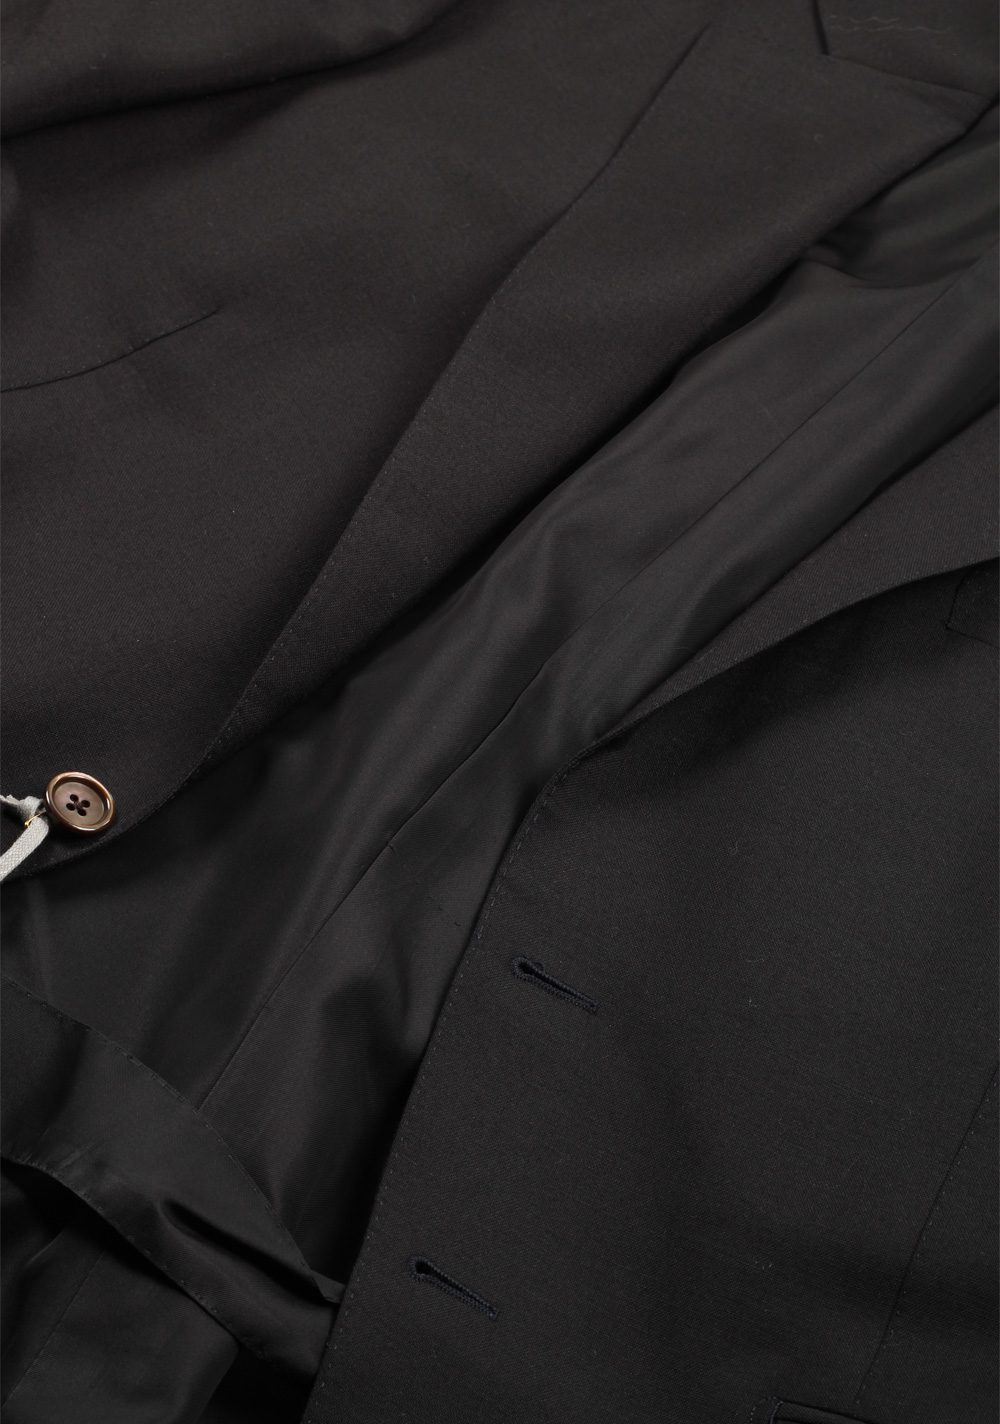 TOM FORD O'Connor Black Suit Size 50C/ 40S U.S. In Mohair Cashmere | Costume Limité